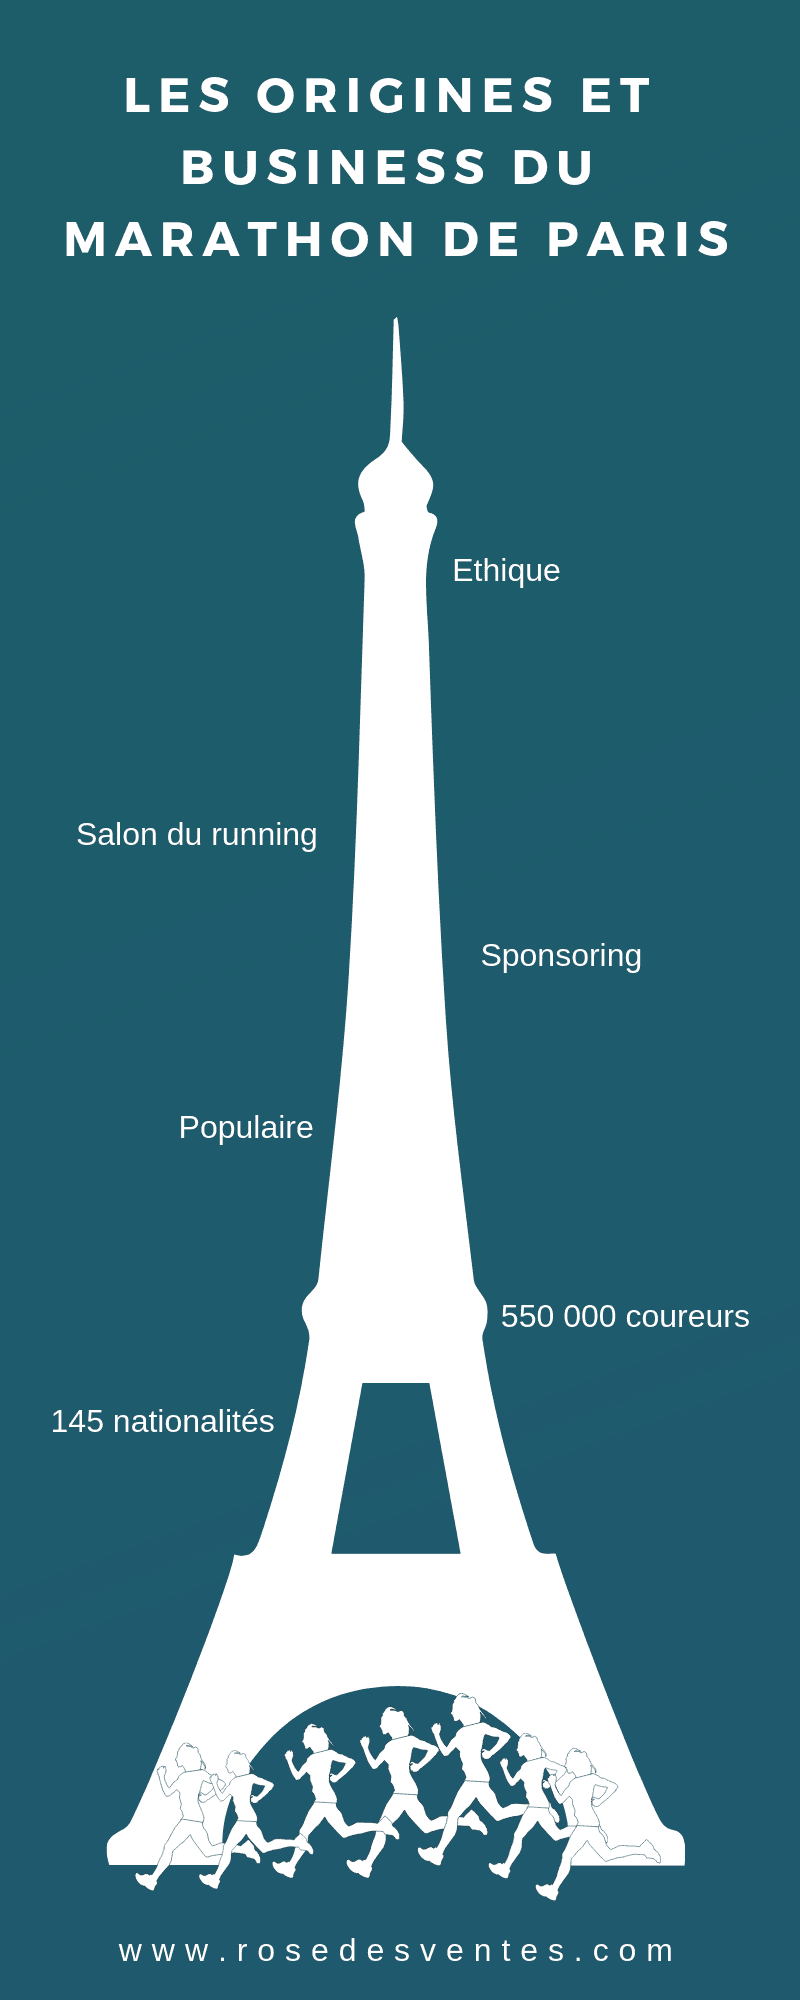 Les origines et business du marathon de Paris